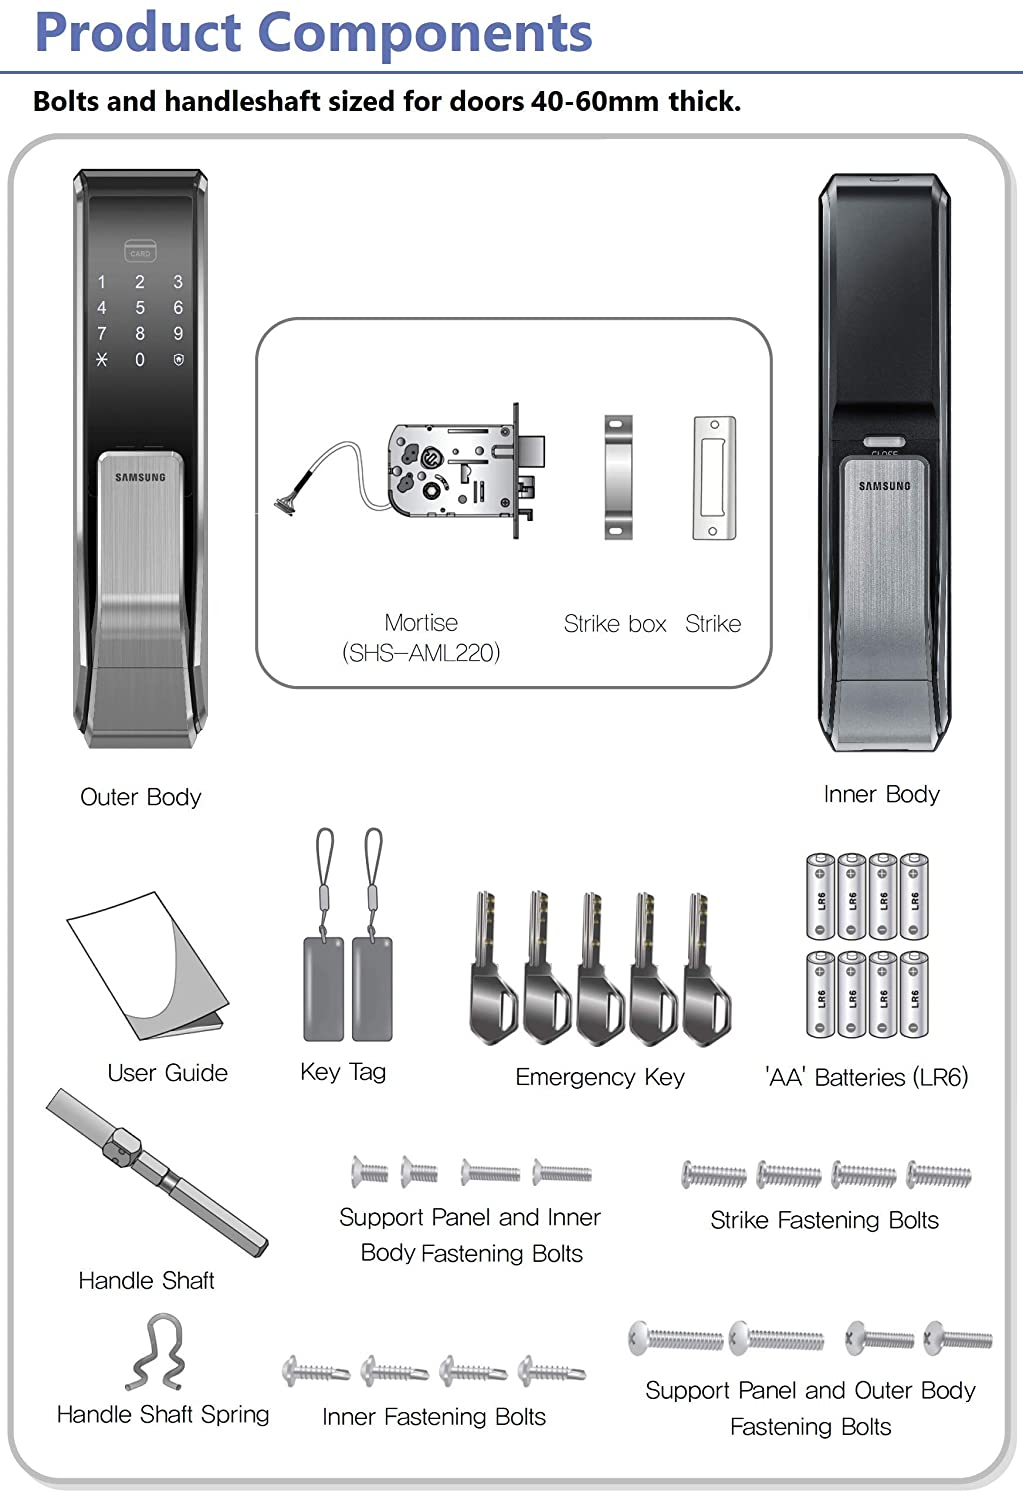 Samsung Shs P717 Lmk Push Pull Touchscreen Digital Door Schlage Series 300 Wiring Diagram Lock Code And Rfid Entry Small Mortise Aml 220 Camera Photo